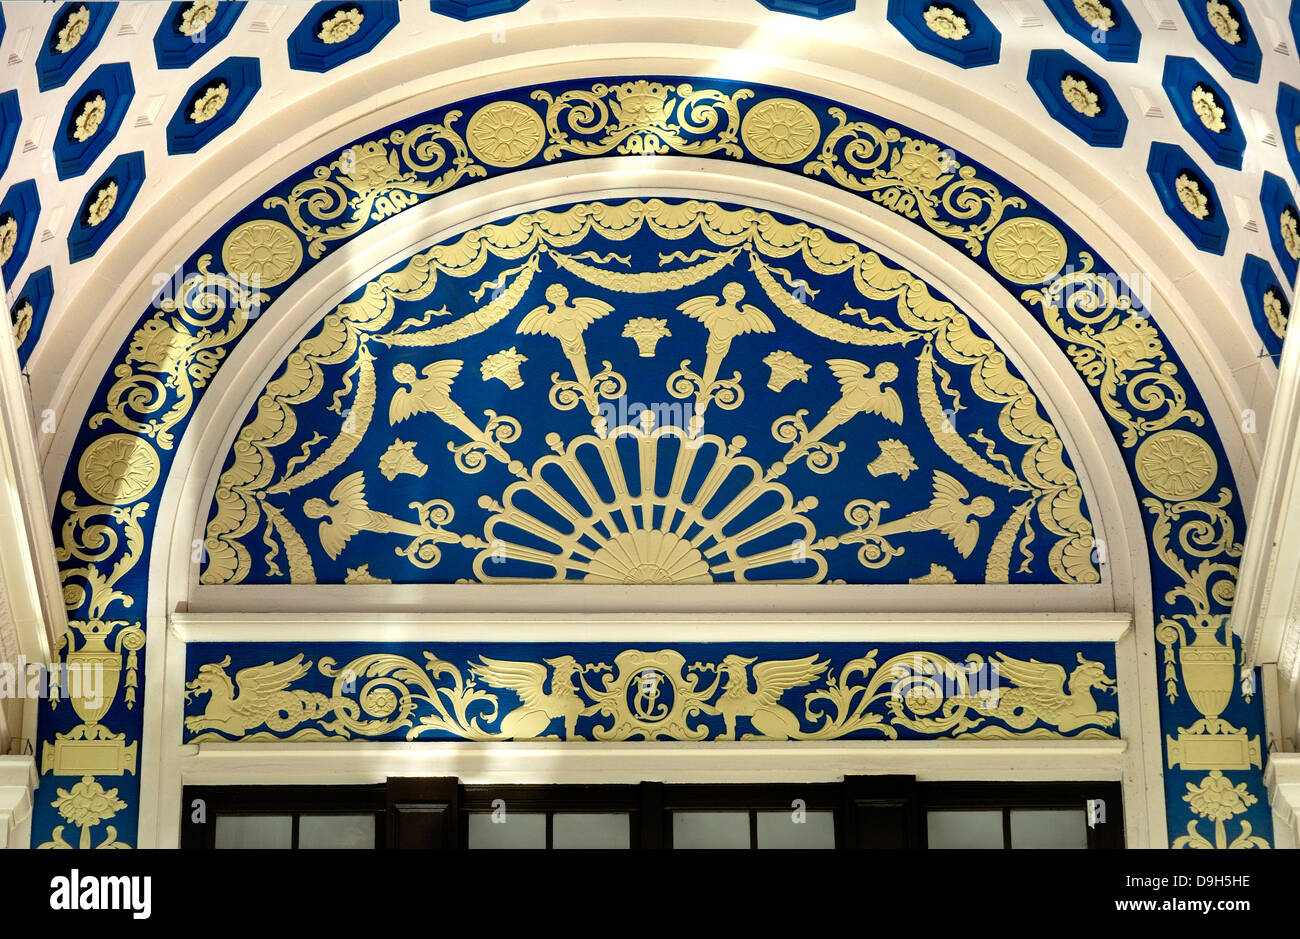 London, England, UK. Empire Theatre / Cinema, Leicester Square. Decorative detail on facade - Stock Image